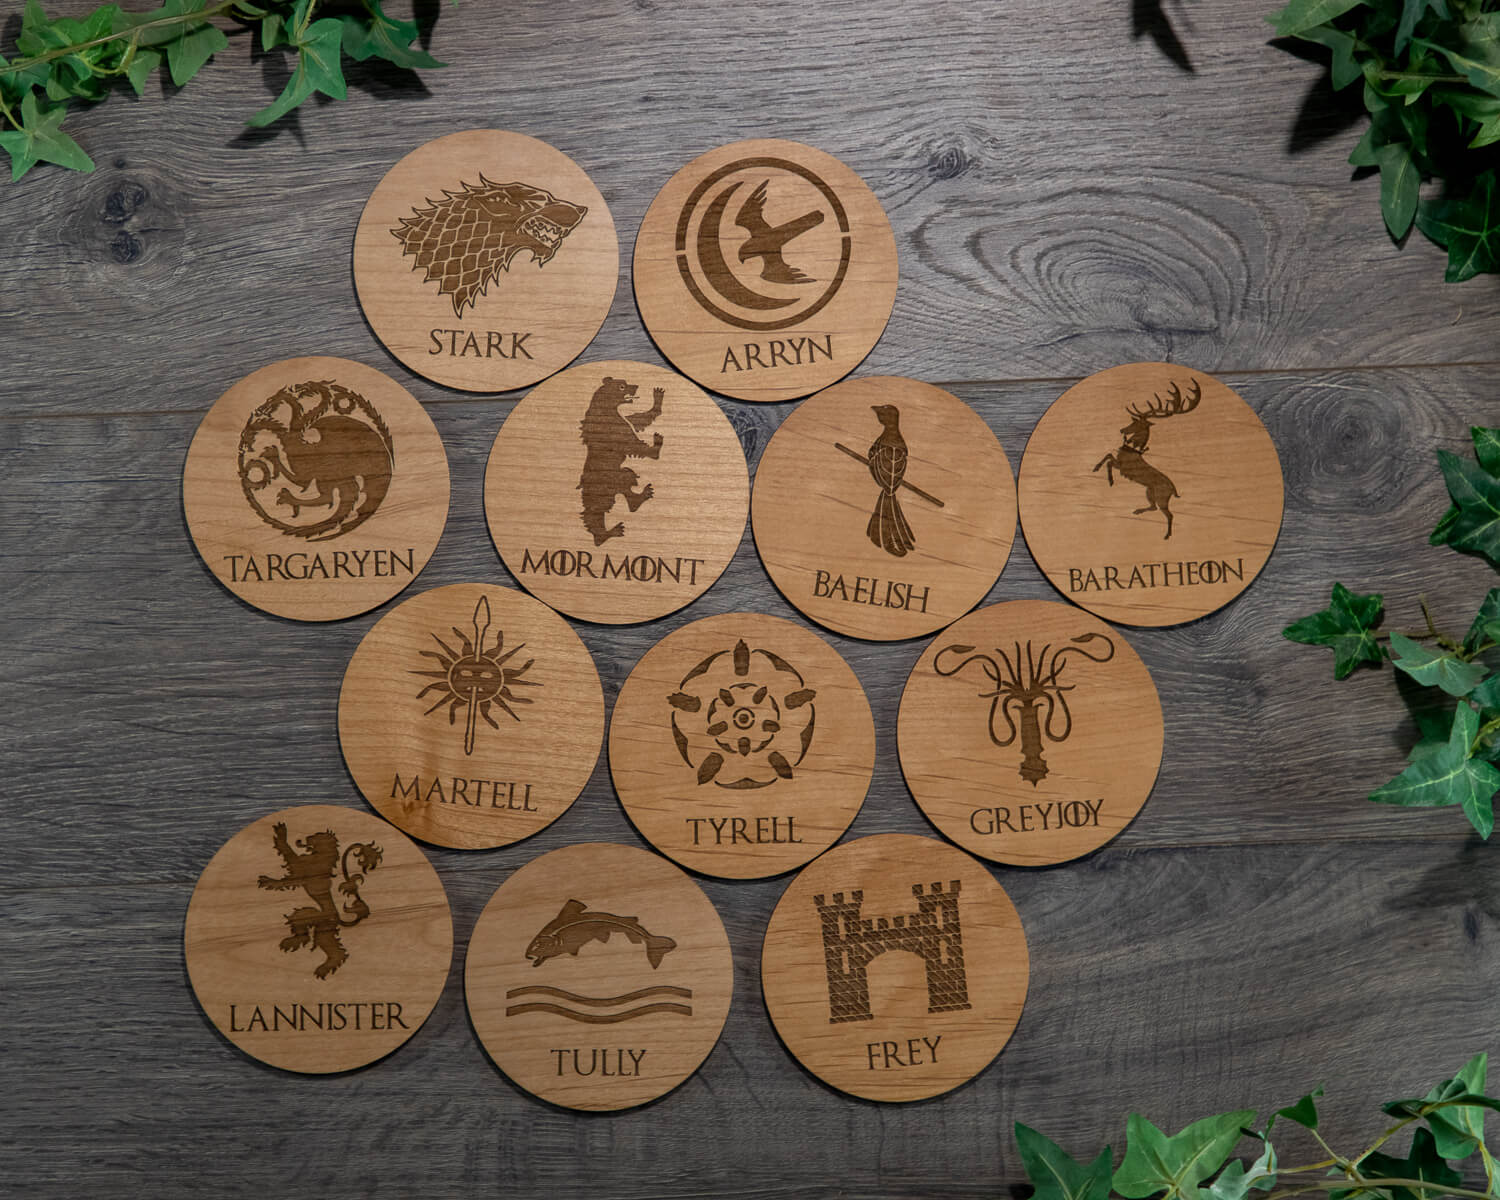 game of thrones wooden coaster drink set gift idea - 4 Cool Game of Thrones Gift Ideas Any Fan Would Love!